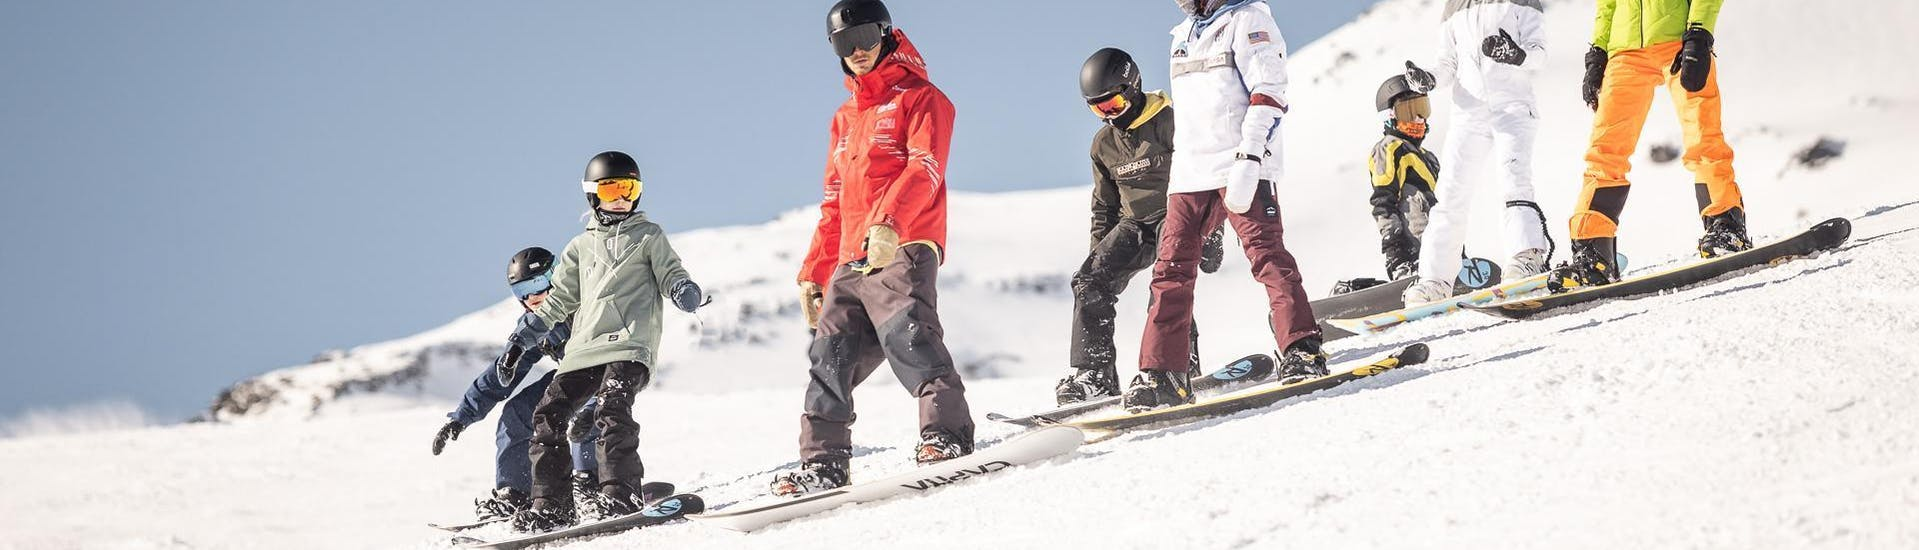 A group of snowboarders is learning how to move on the board during the Snowboarding Lessons for Adults - All Levels organized by the ski school Ski & Snowboardschool Vacancia in the ski resort of Sölden.